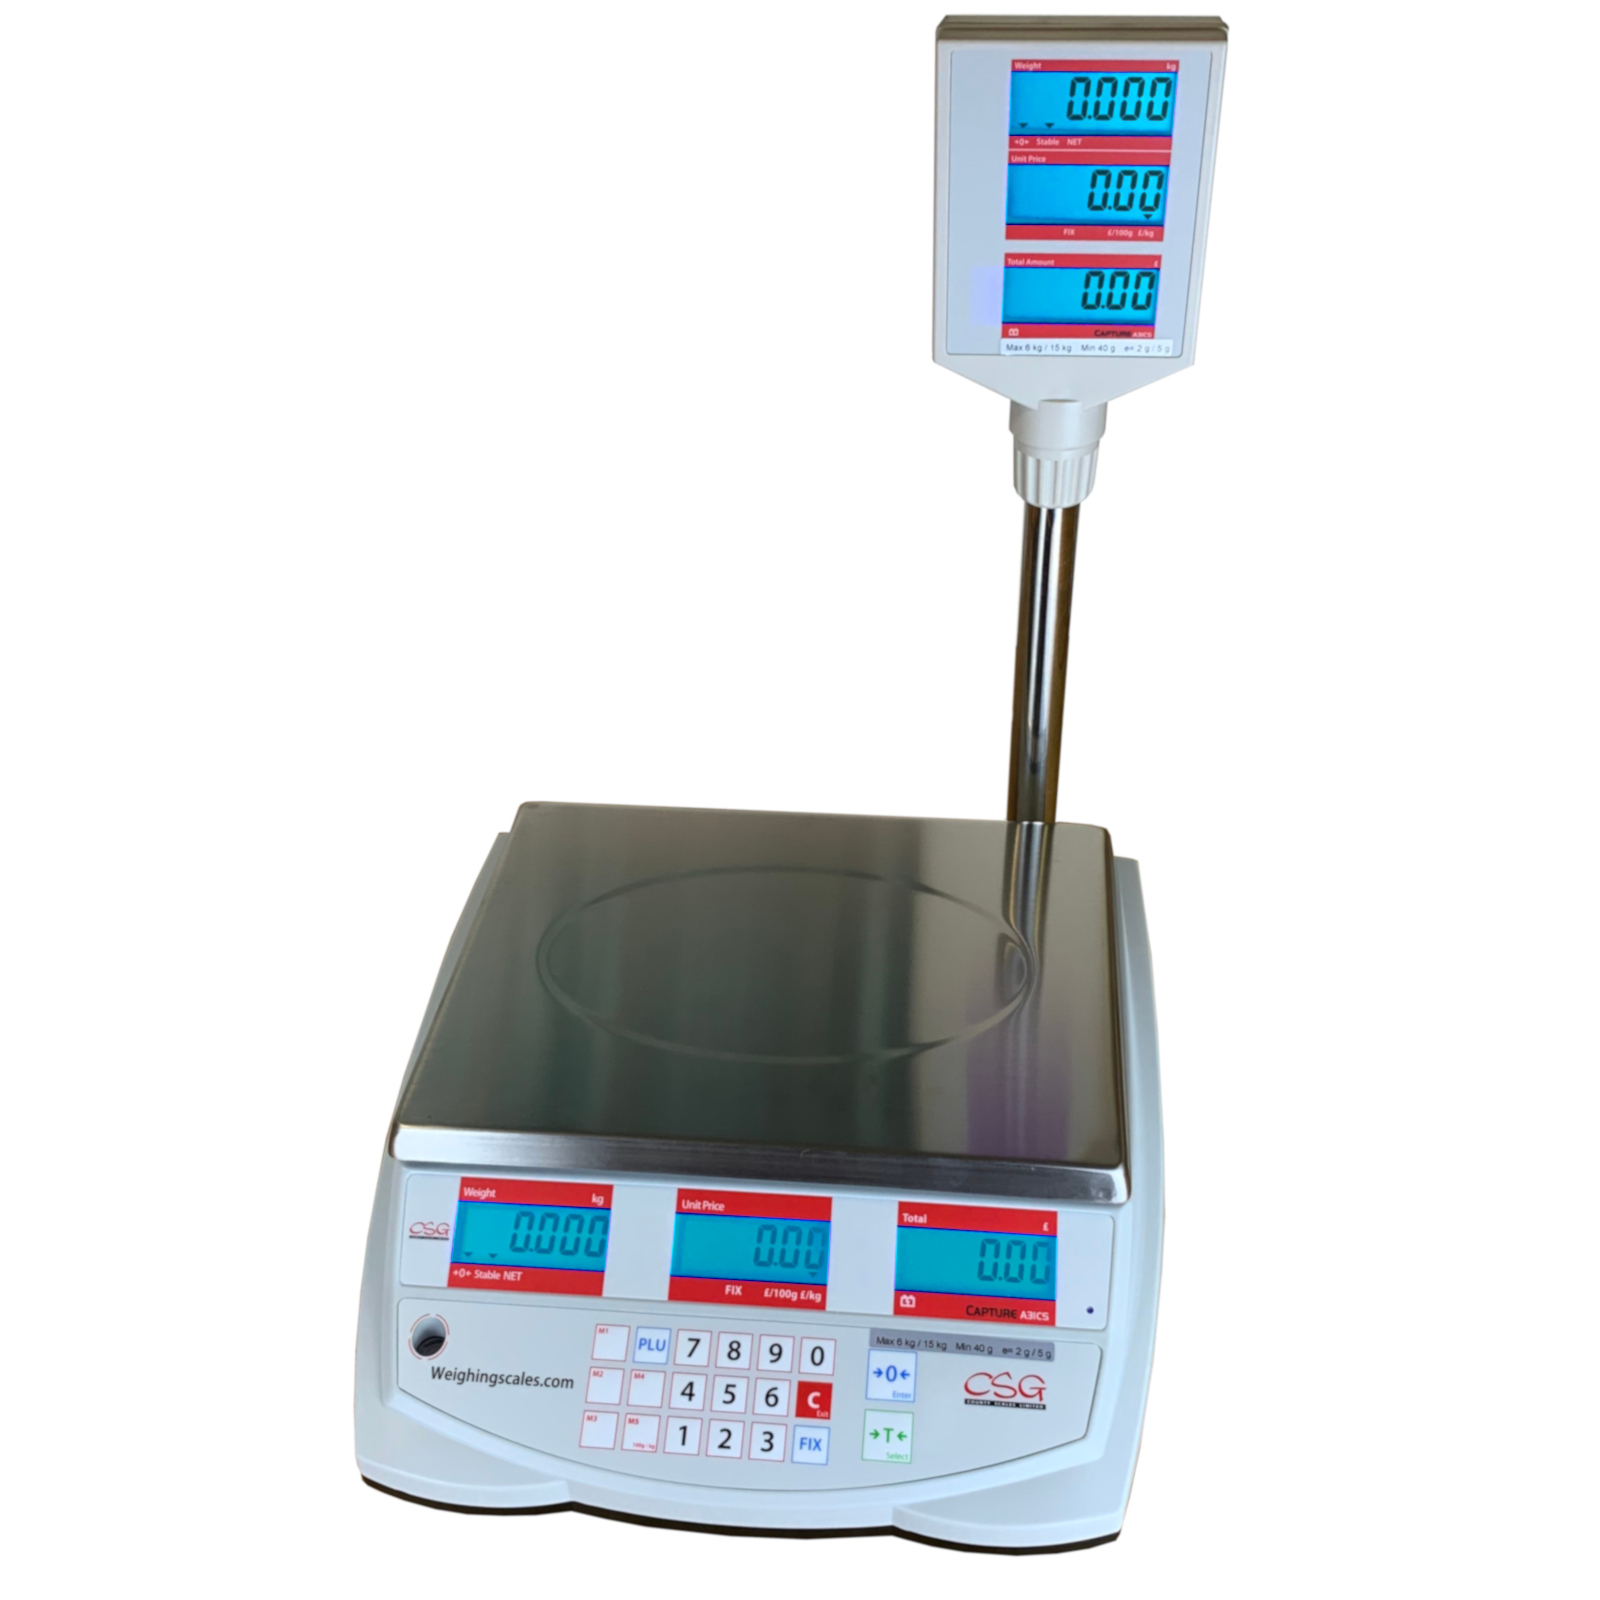 CSG CAPTURE TOWER RETAIL SCALES Well designed price computing shop scales